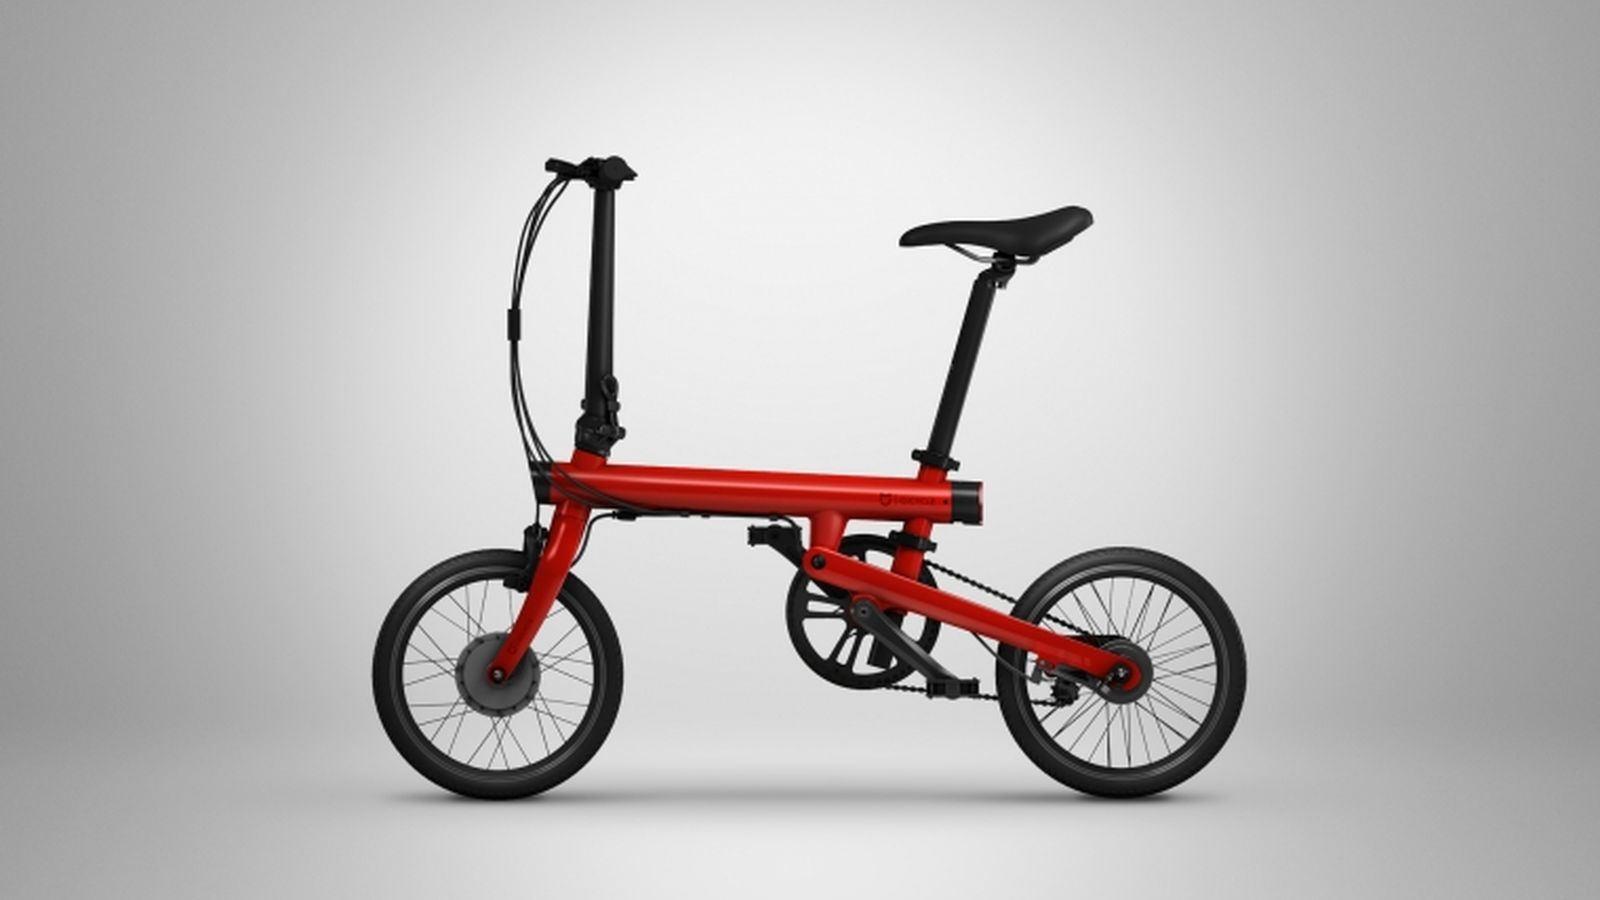 Xiaomi S Cheap Foldable Electric Bike Looks Perfect For City